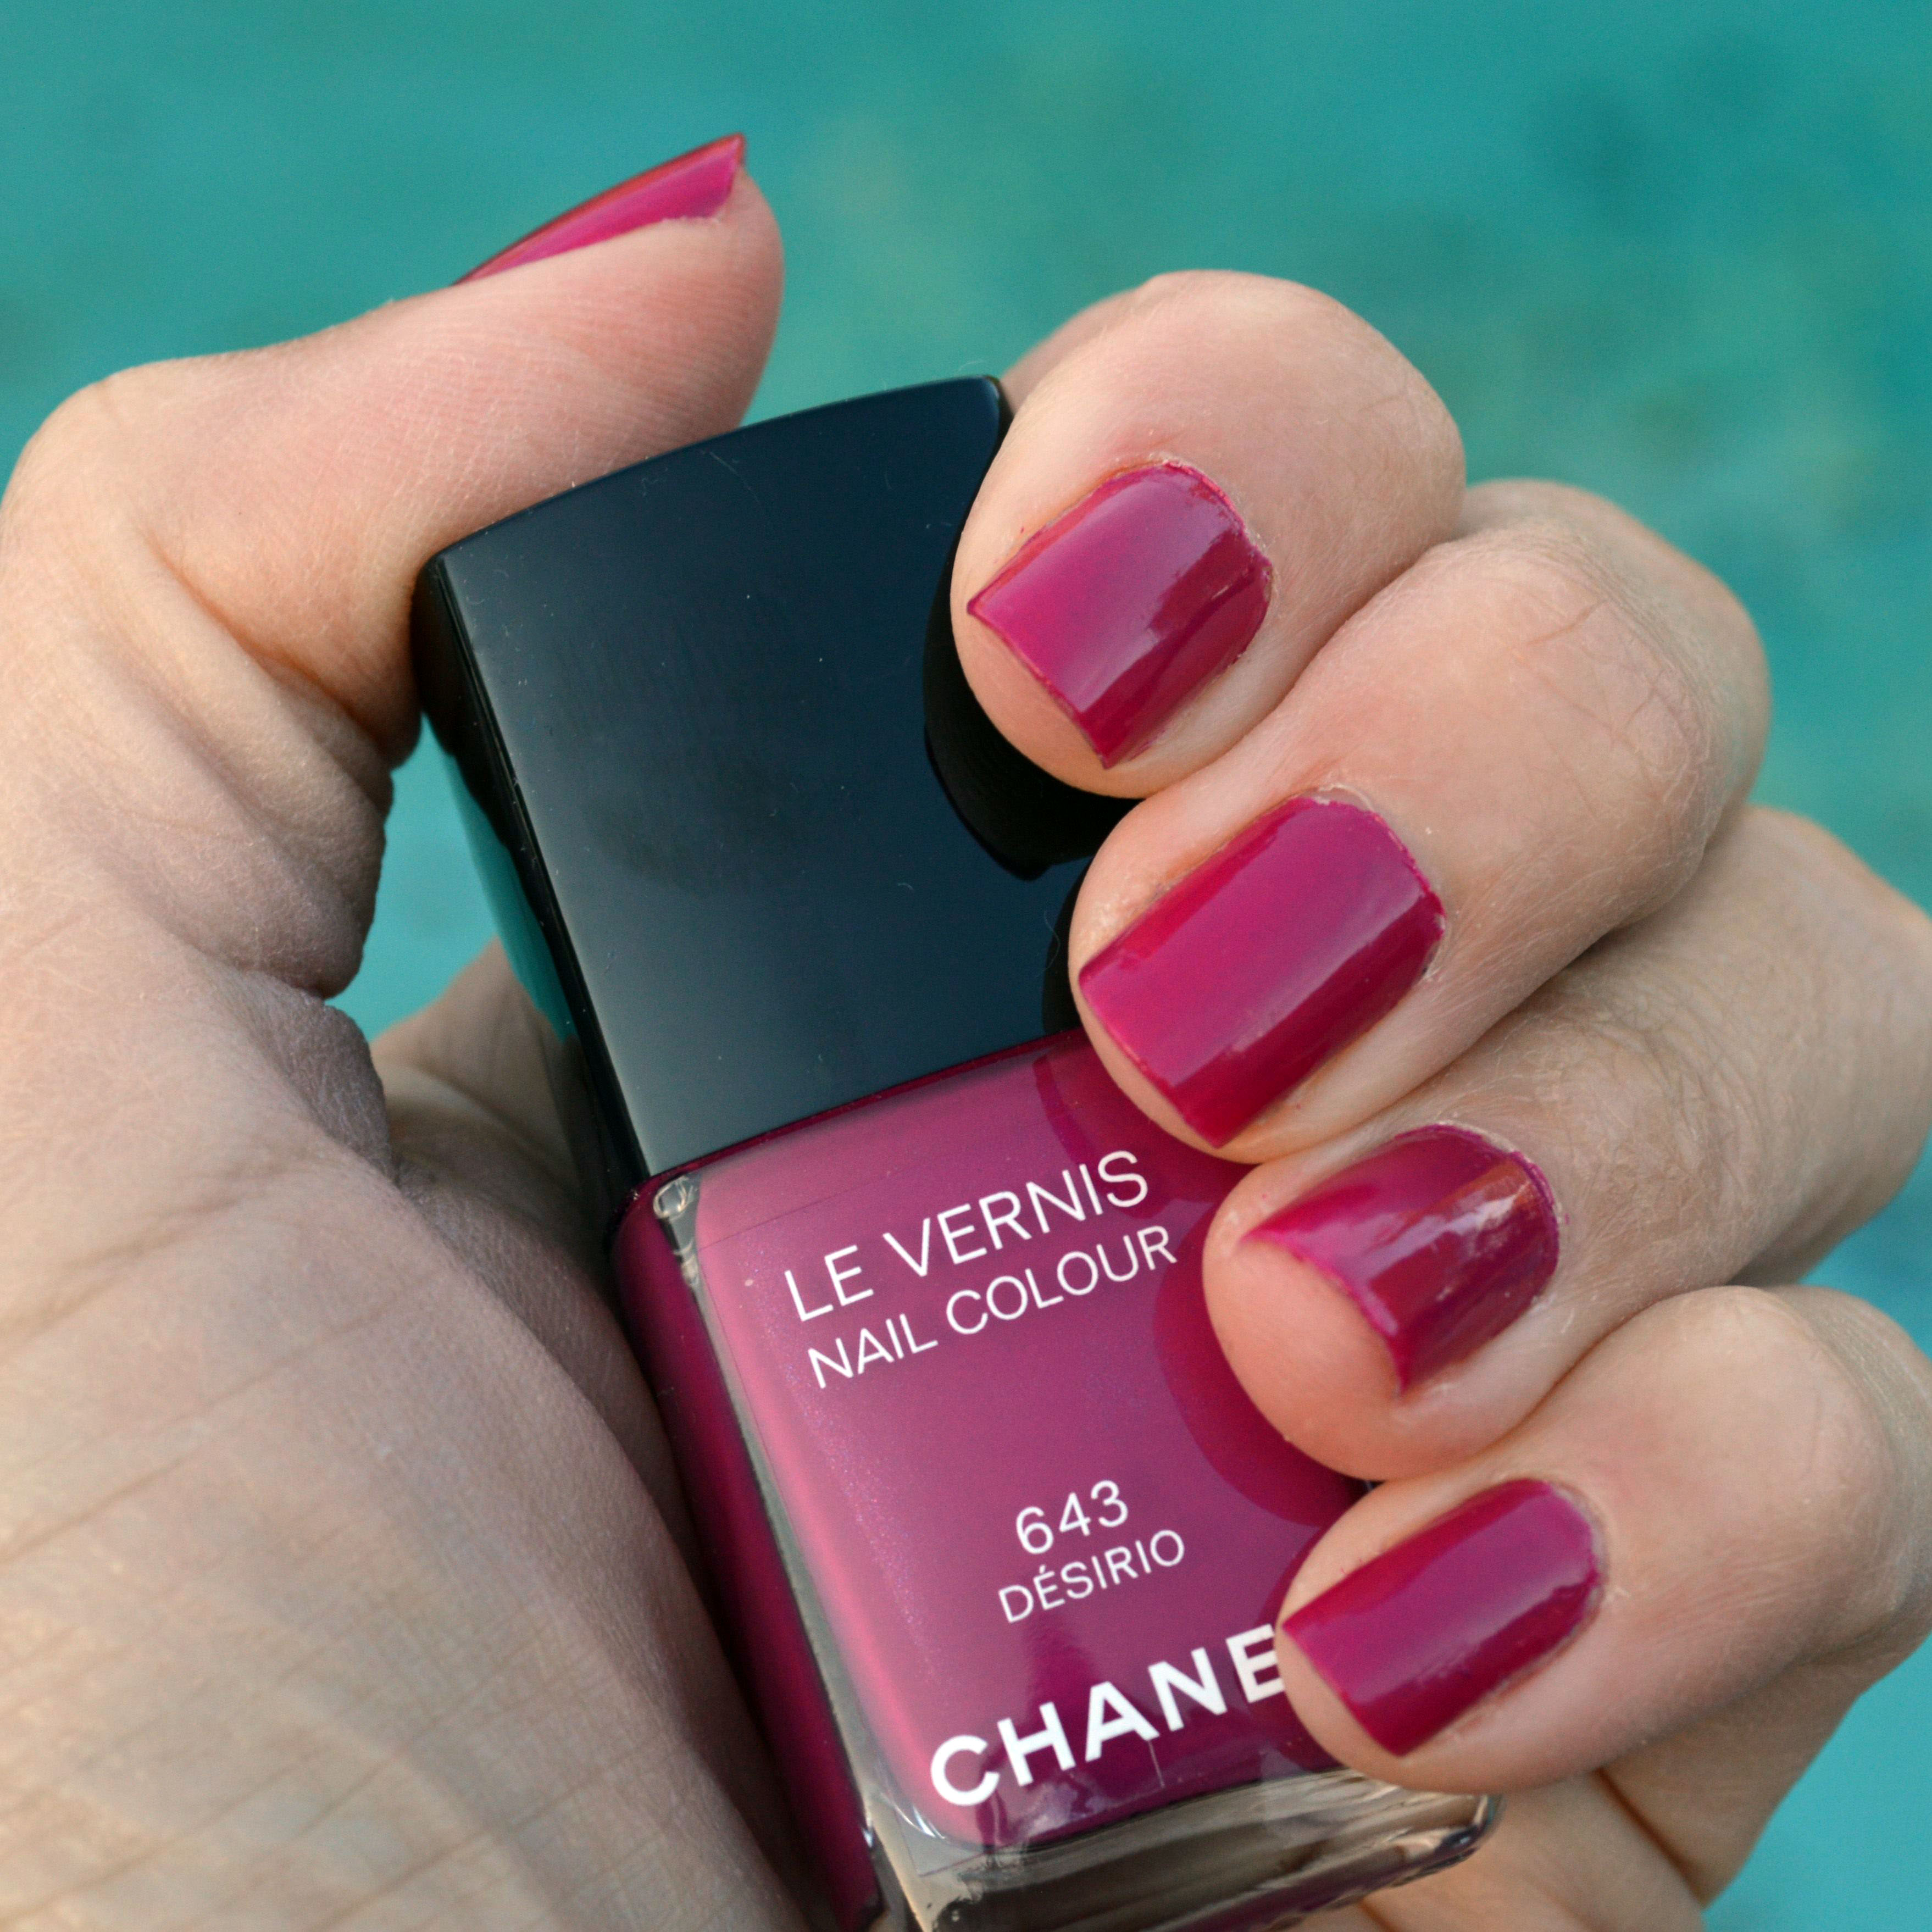 Pictured: chanel desirio nail polish for spring 2015. two coats of